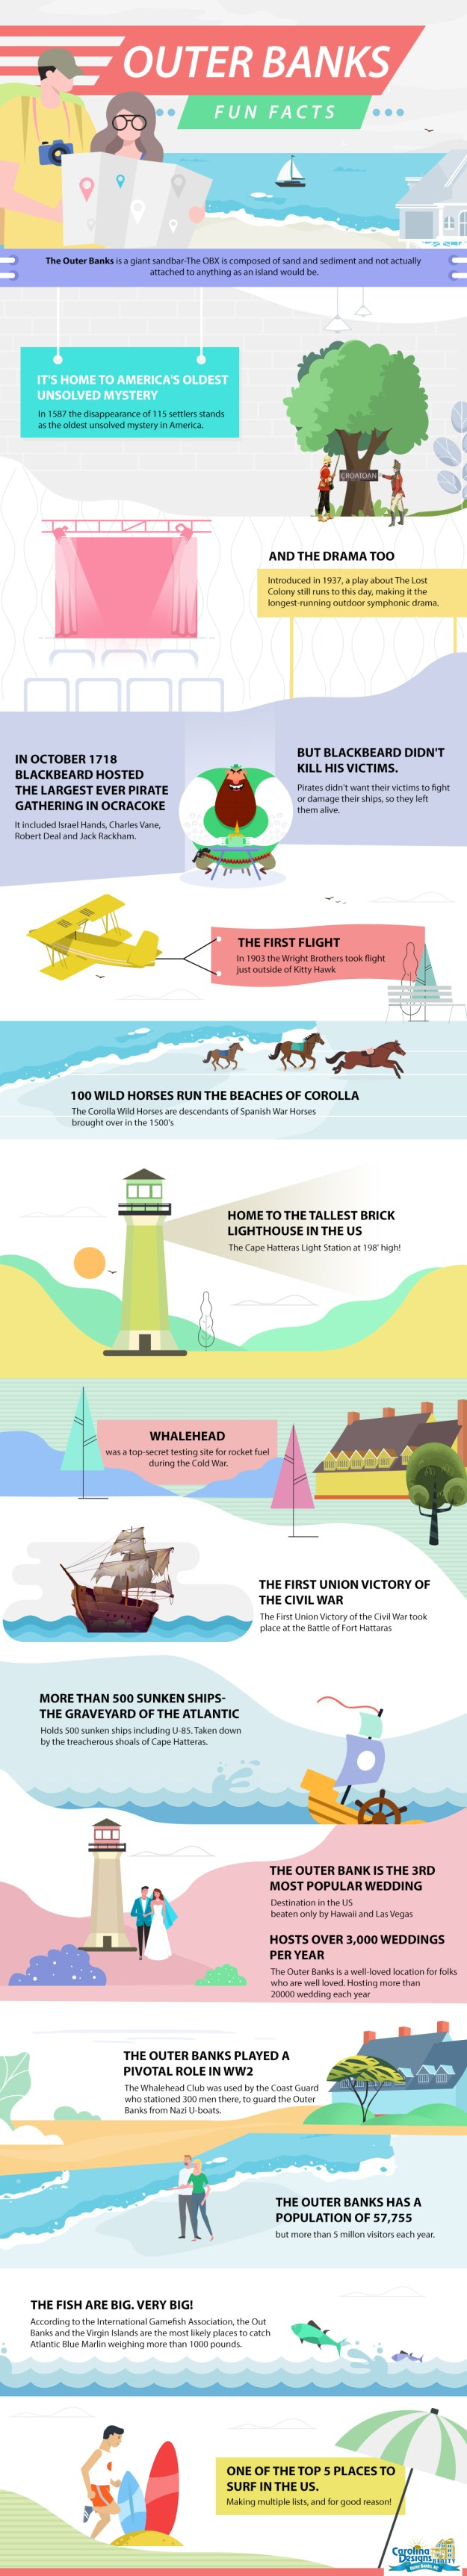 Fun Facts About The Outer Banks